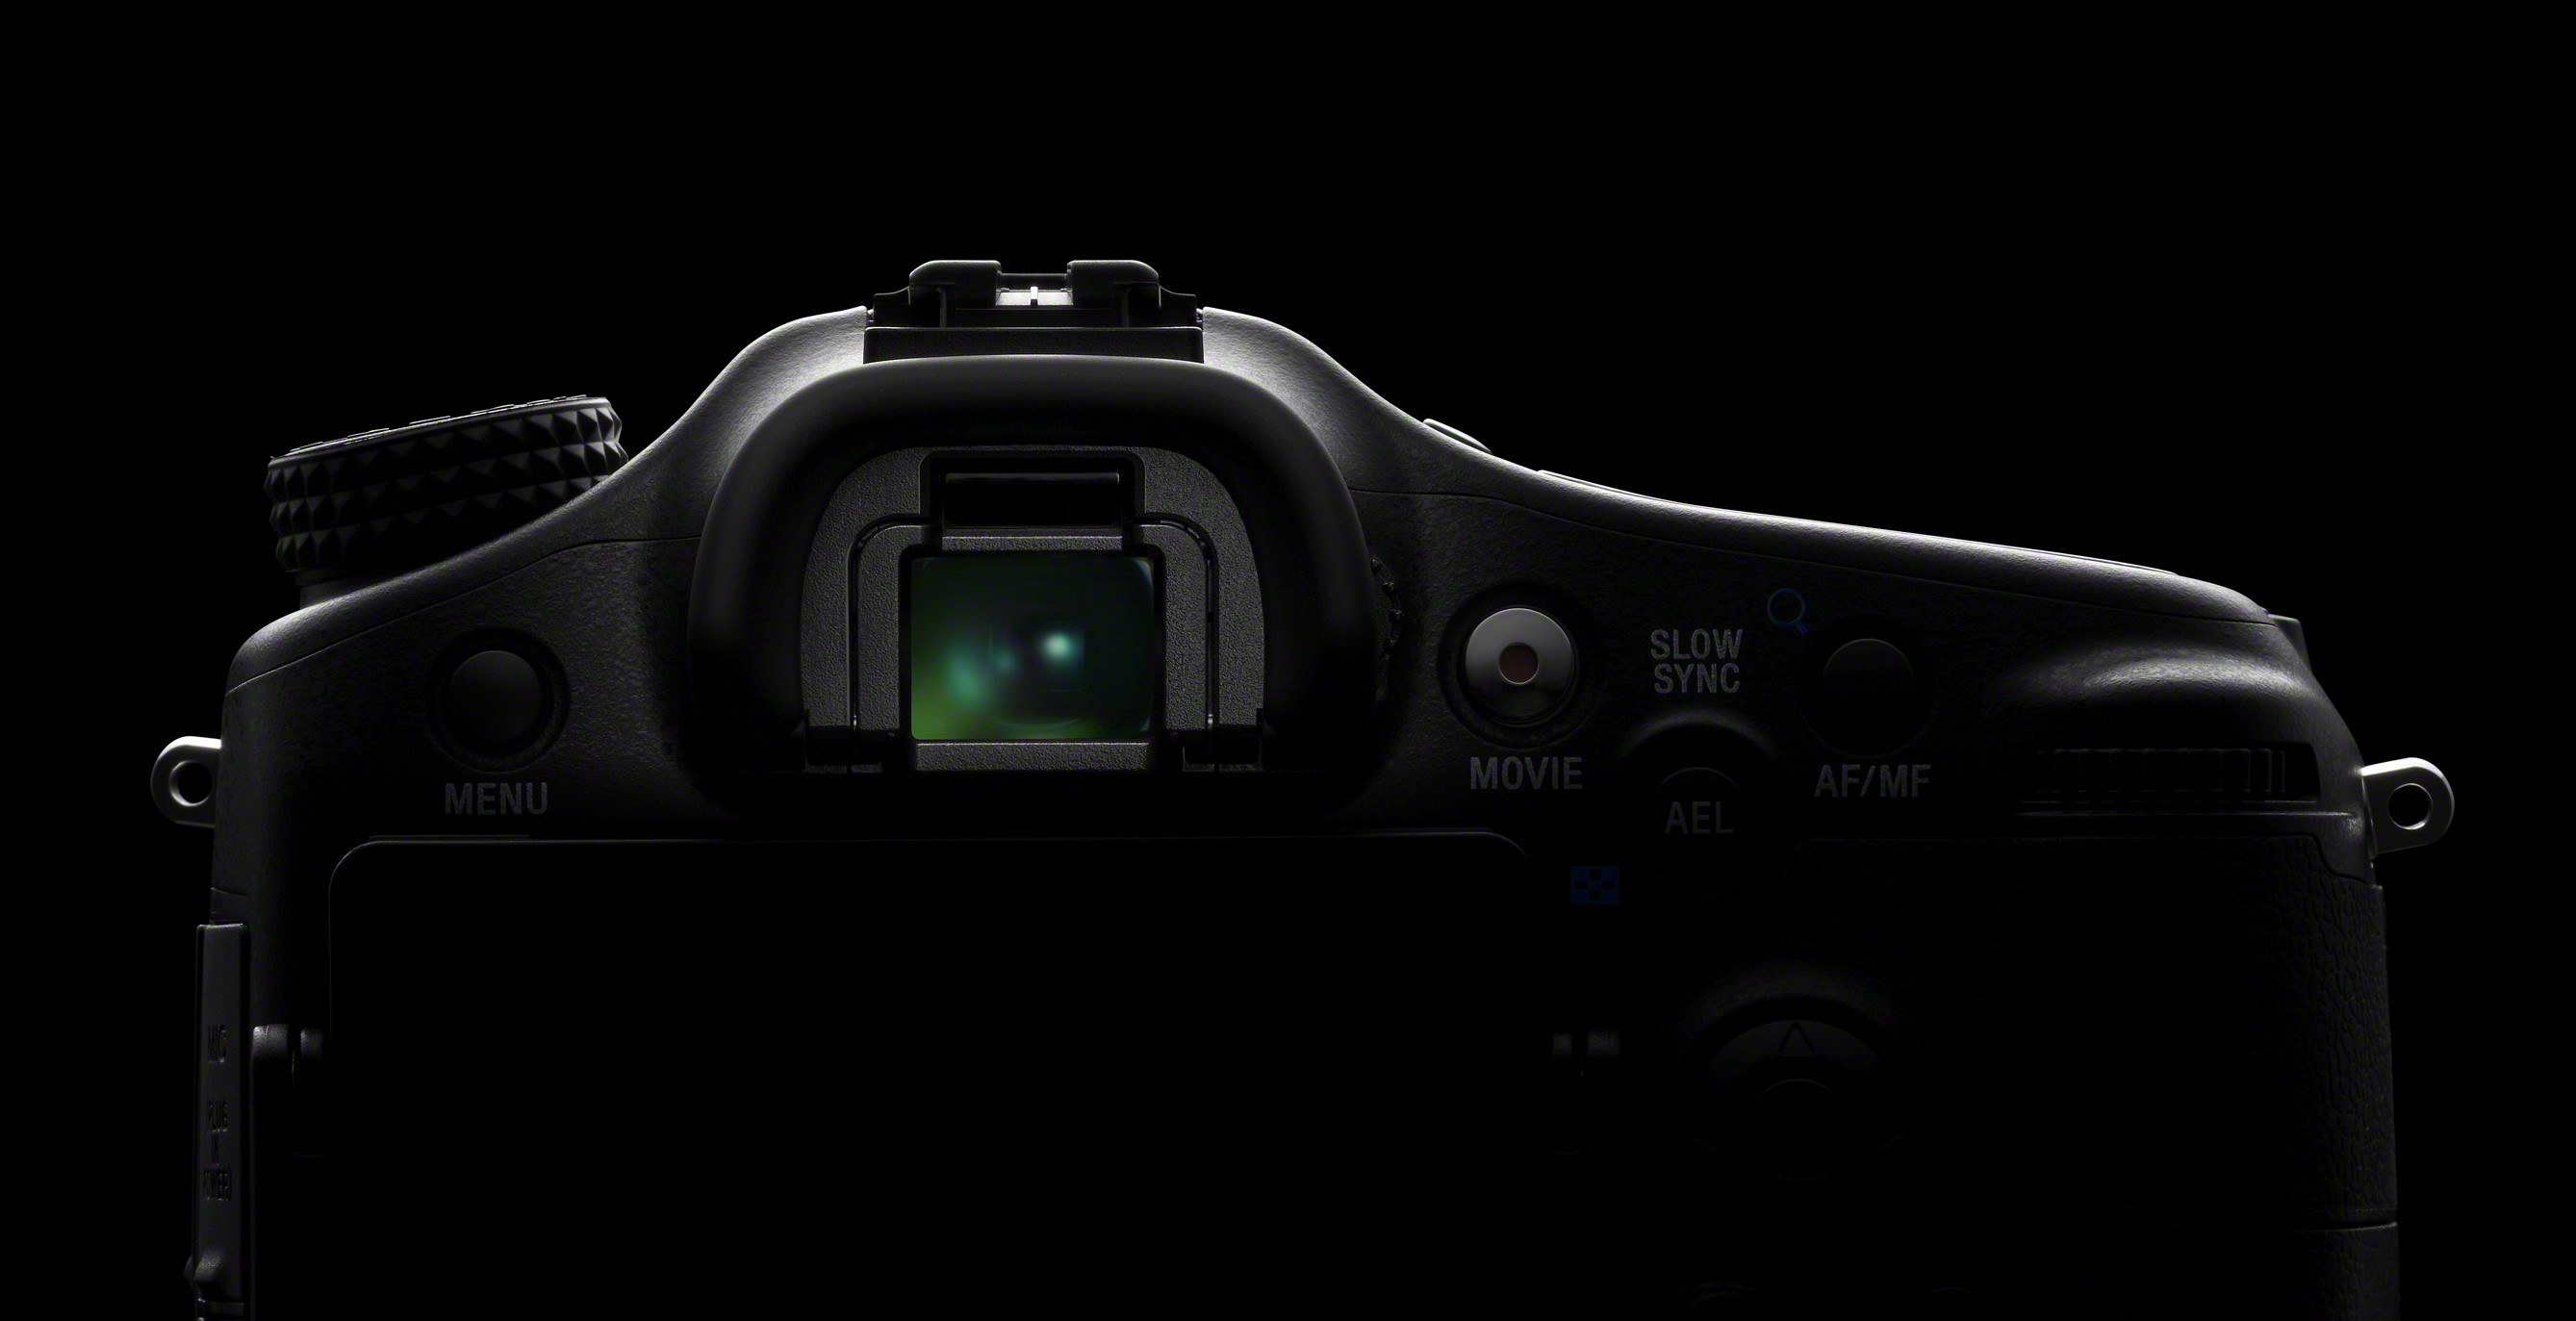 An introduction to OLED: Digital Photography Review